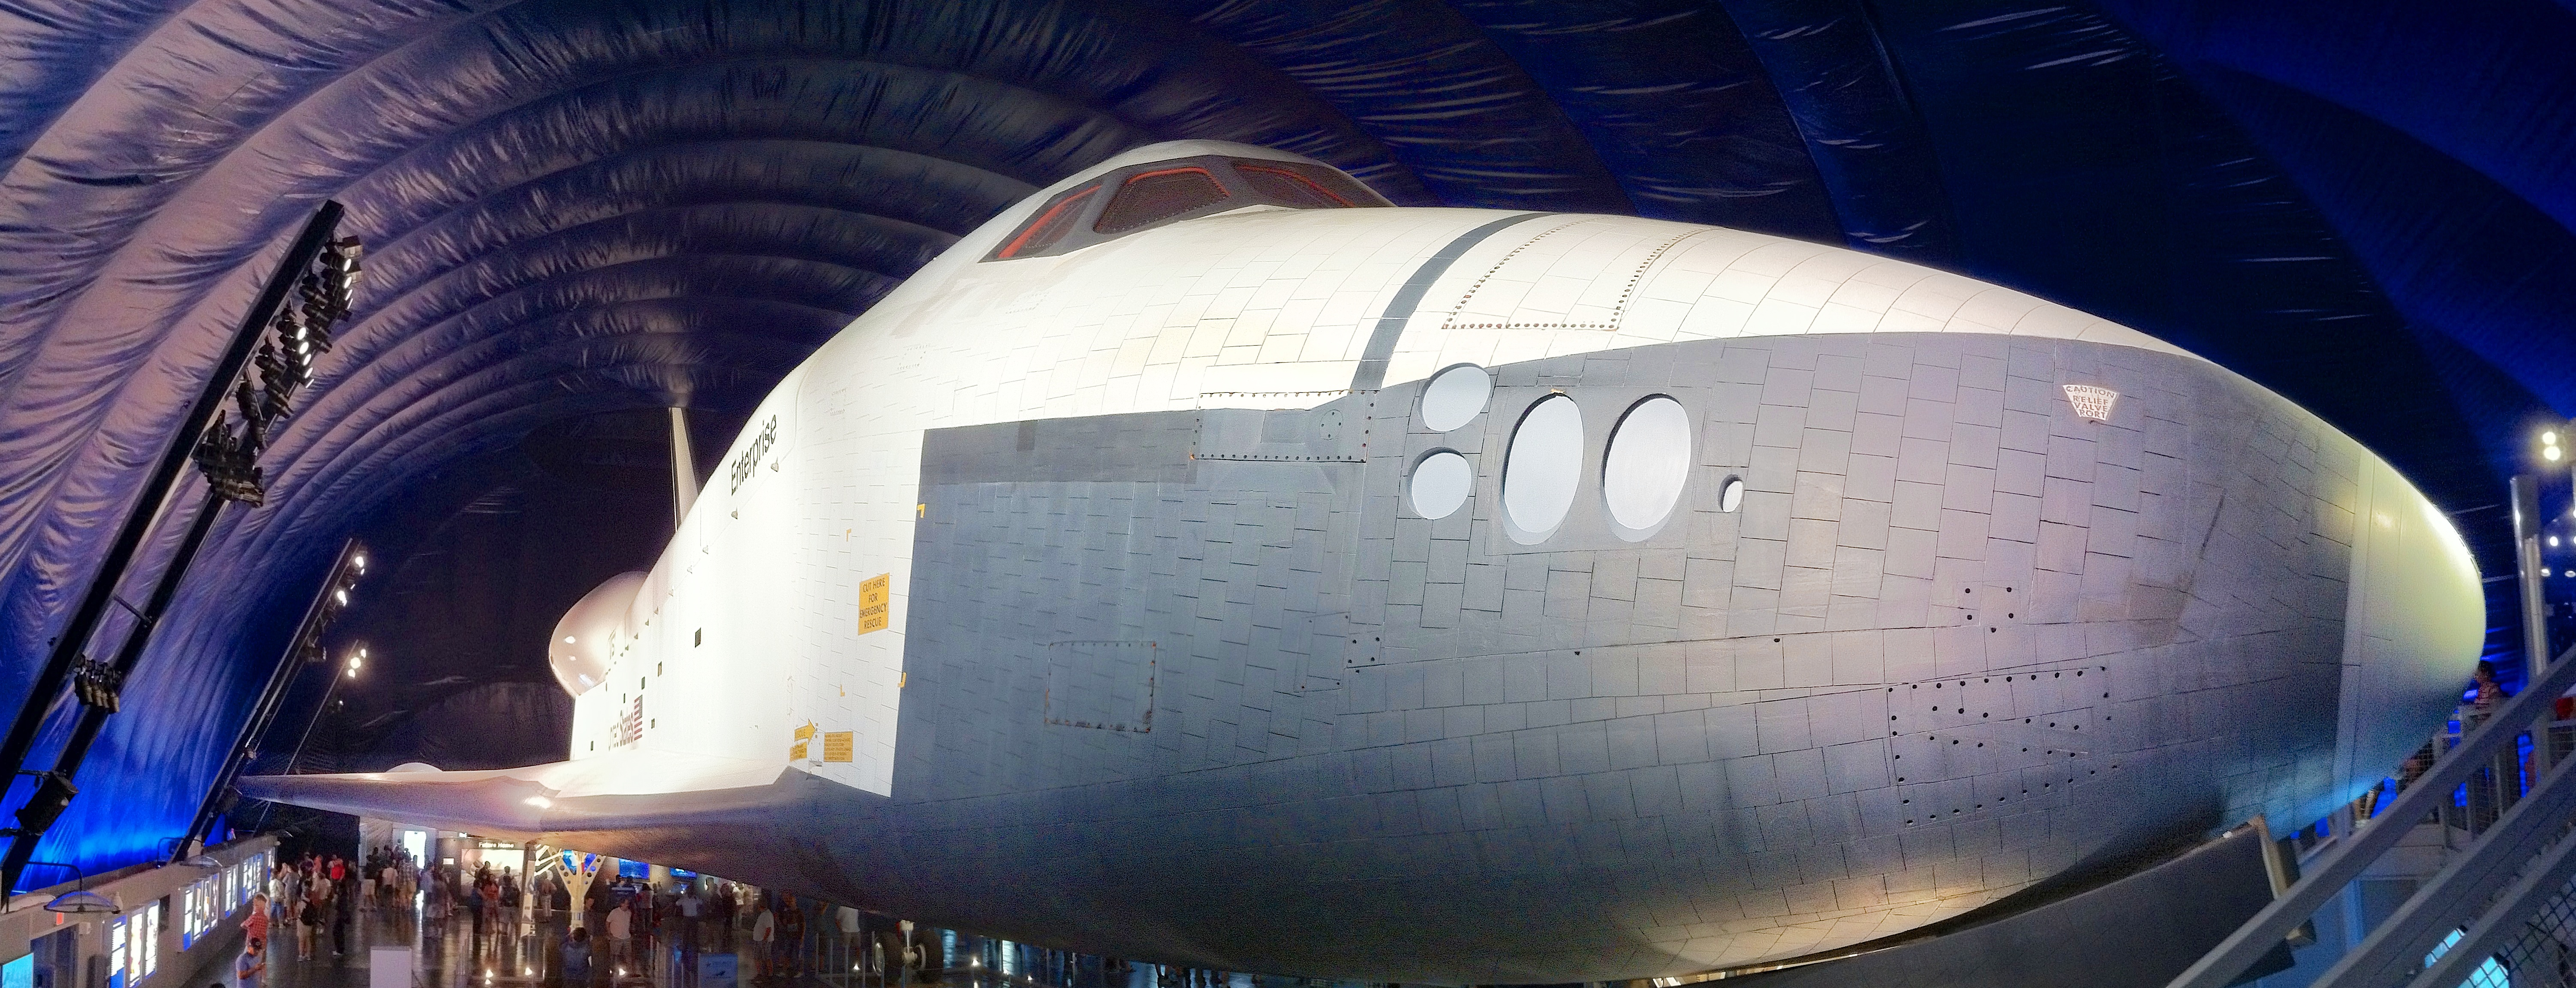 where are space shuttles built - photo #19